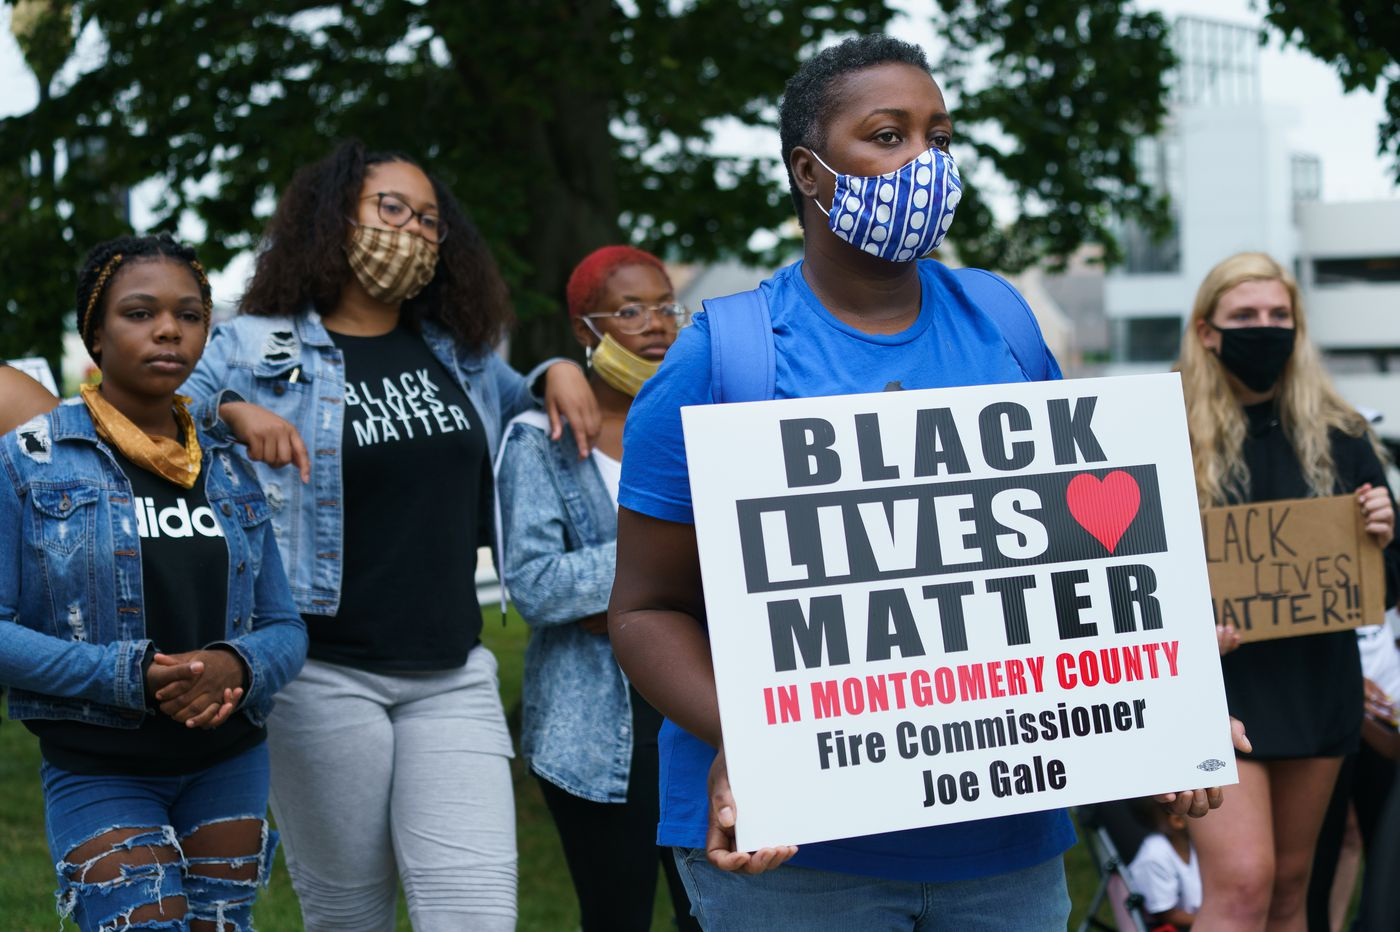 A Montco Republican commissioner called Black Lives Matter a 'hate group.' Now he's more isolated than ever.